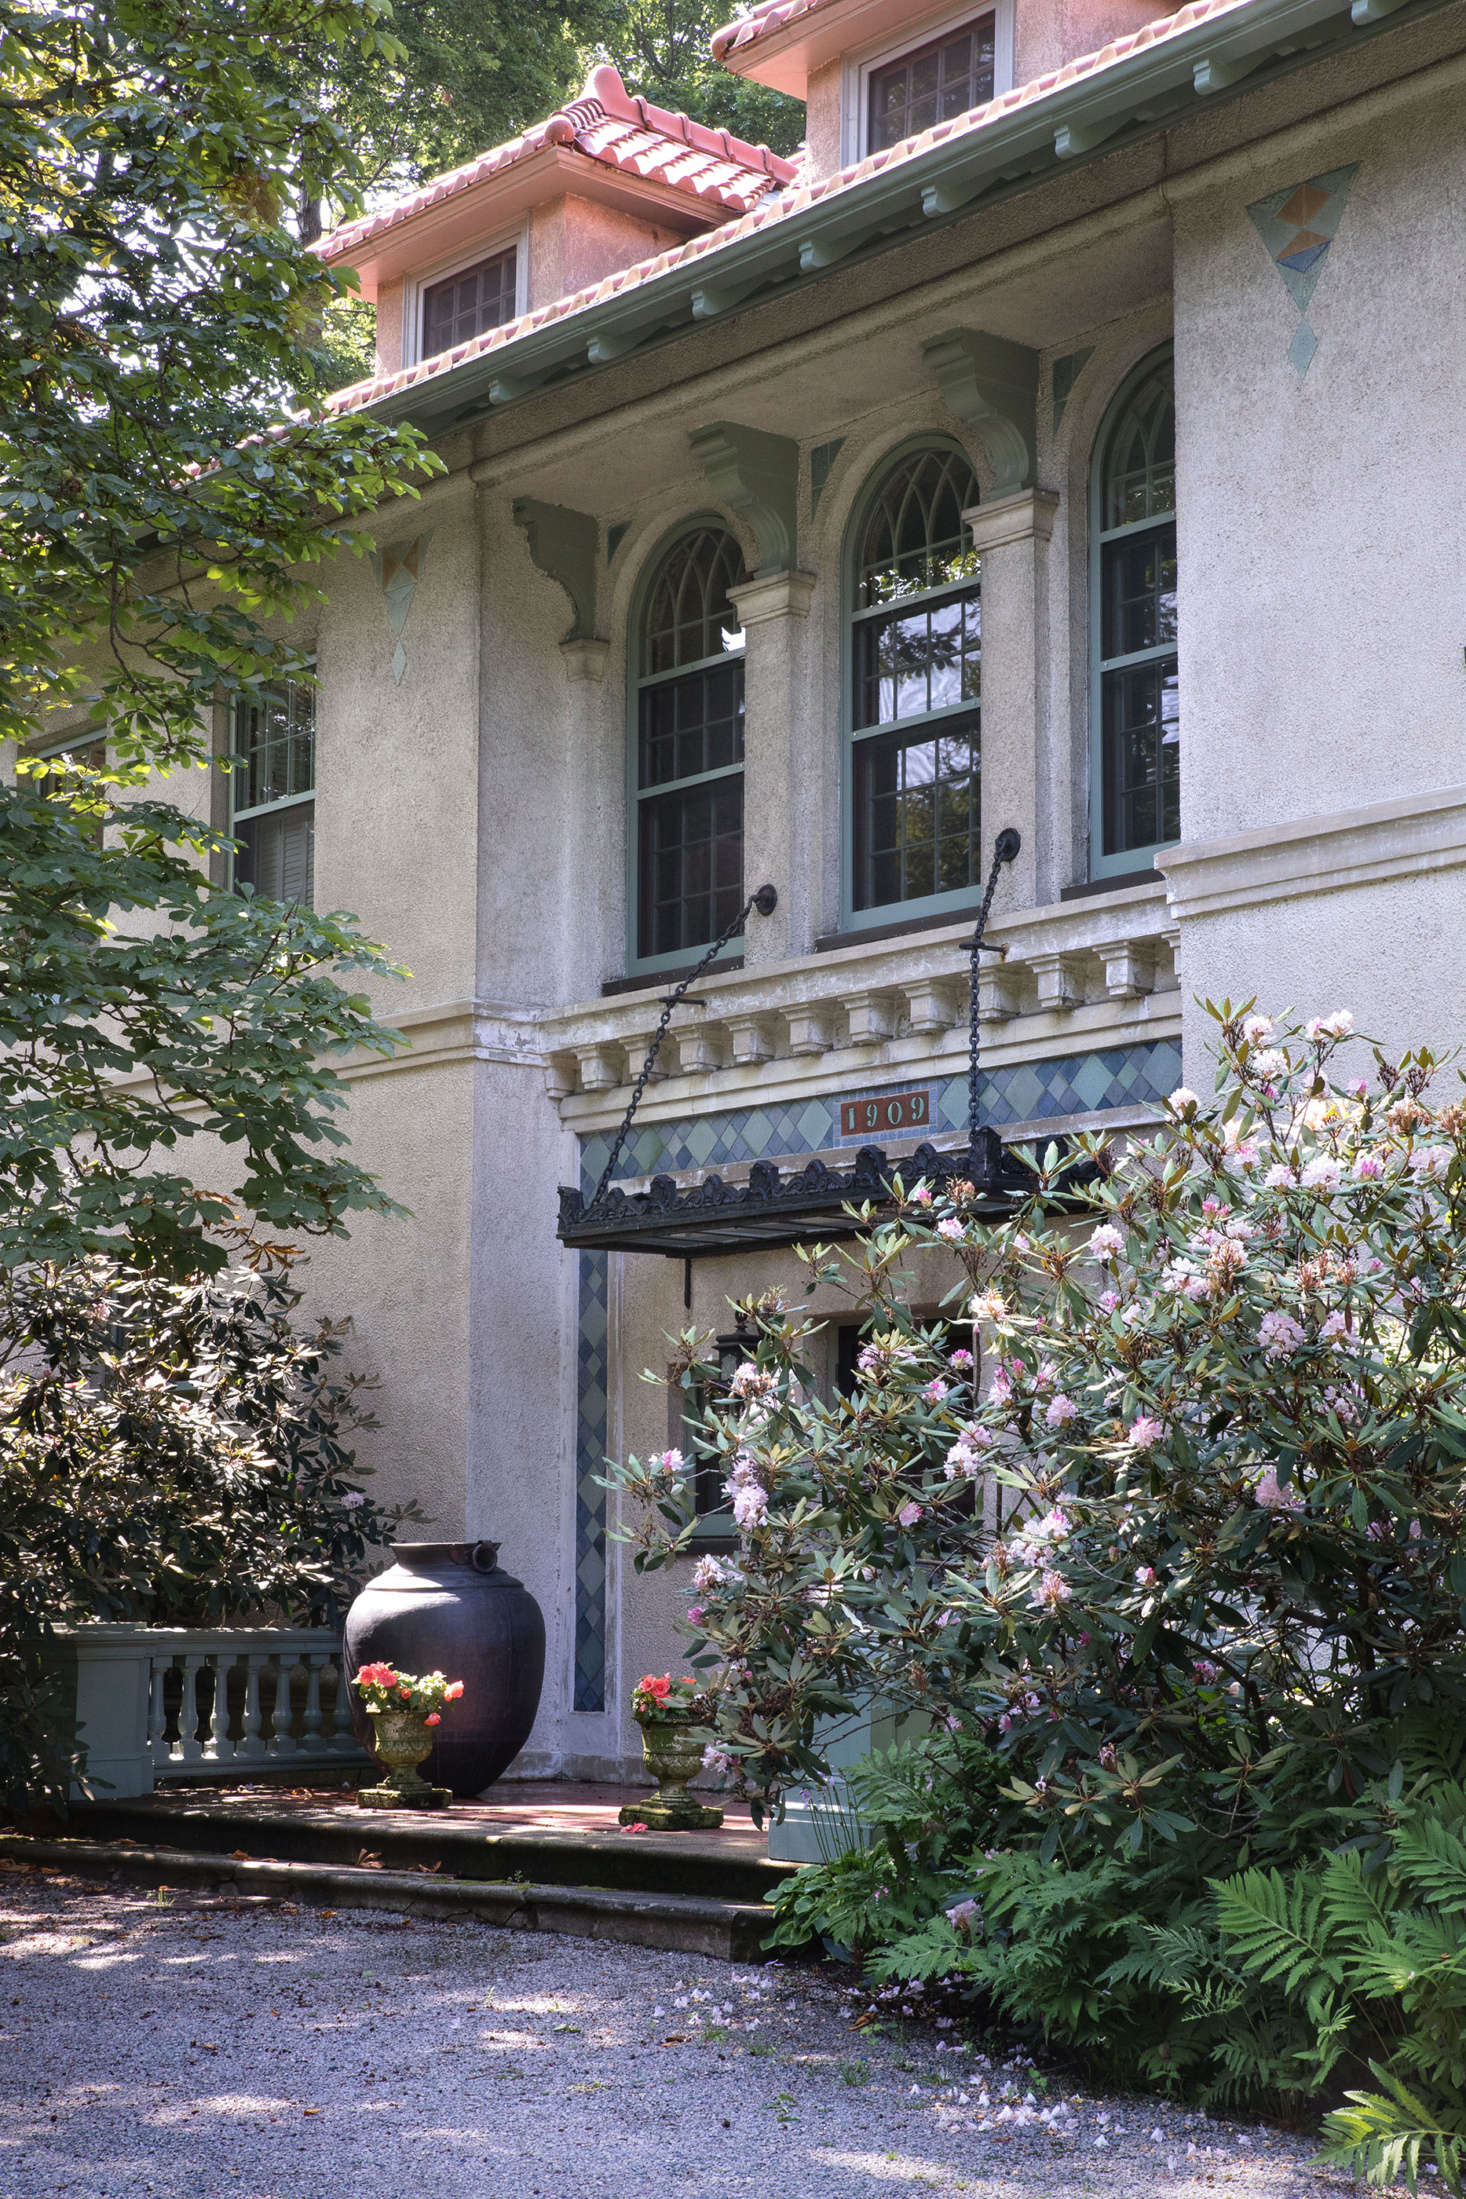 Flanked by ferns and mature rhododendrons, the front entrance of the house maintains a stately appearance.